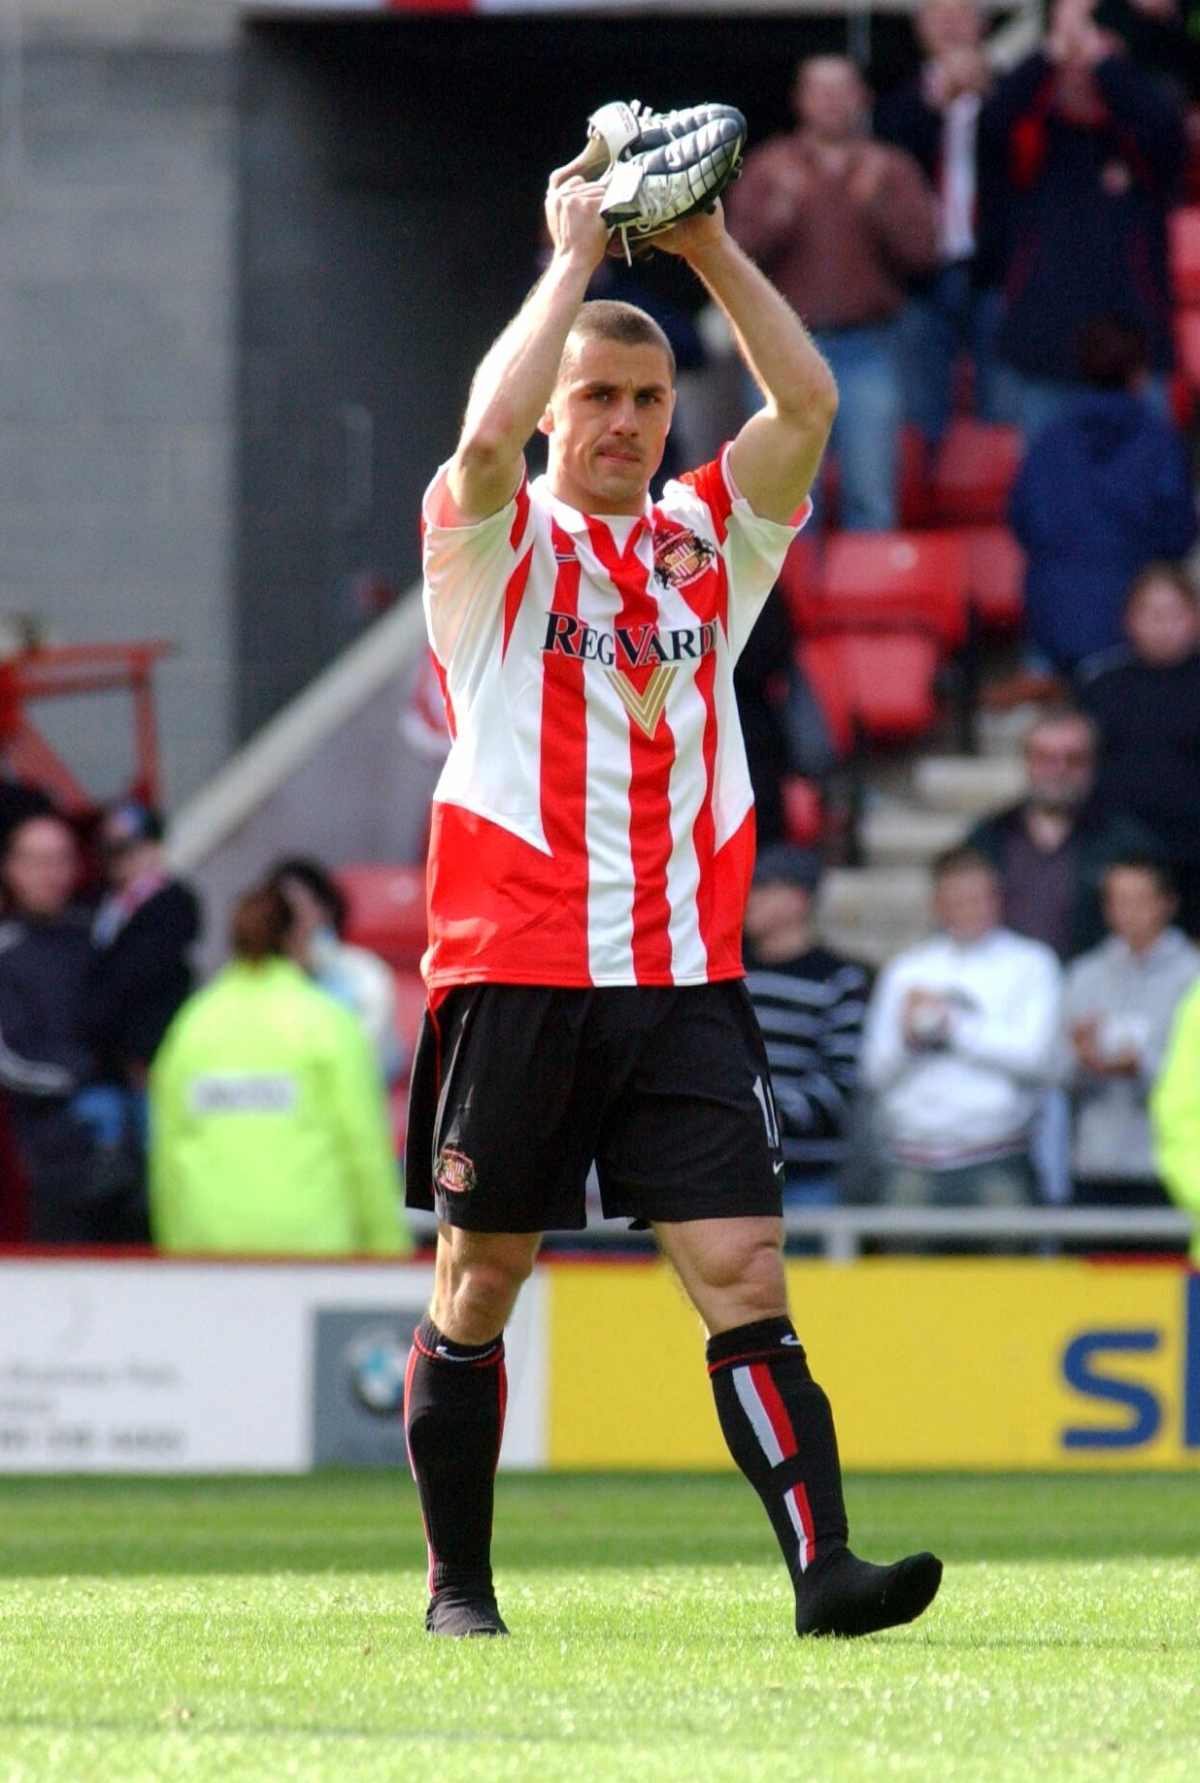 BOWING OUT: Kevin Phillips will play the final game of his footballing career this weekend